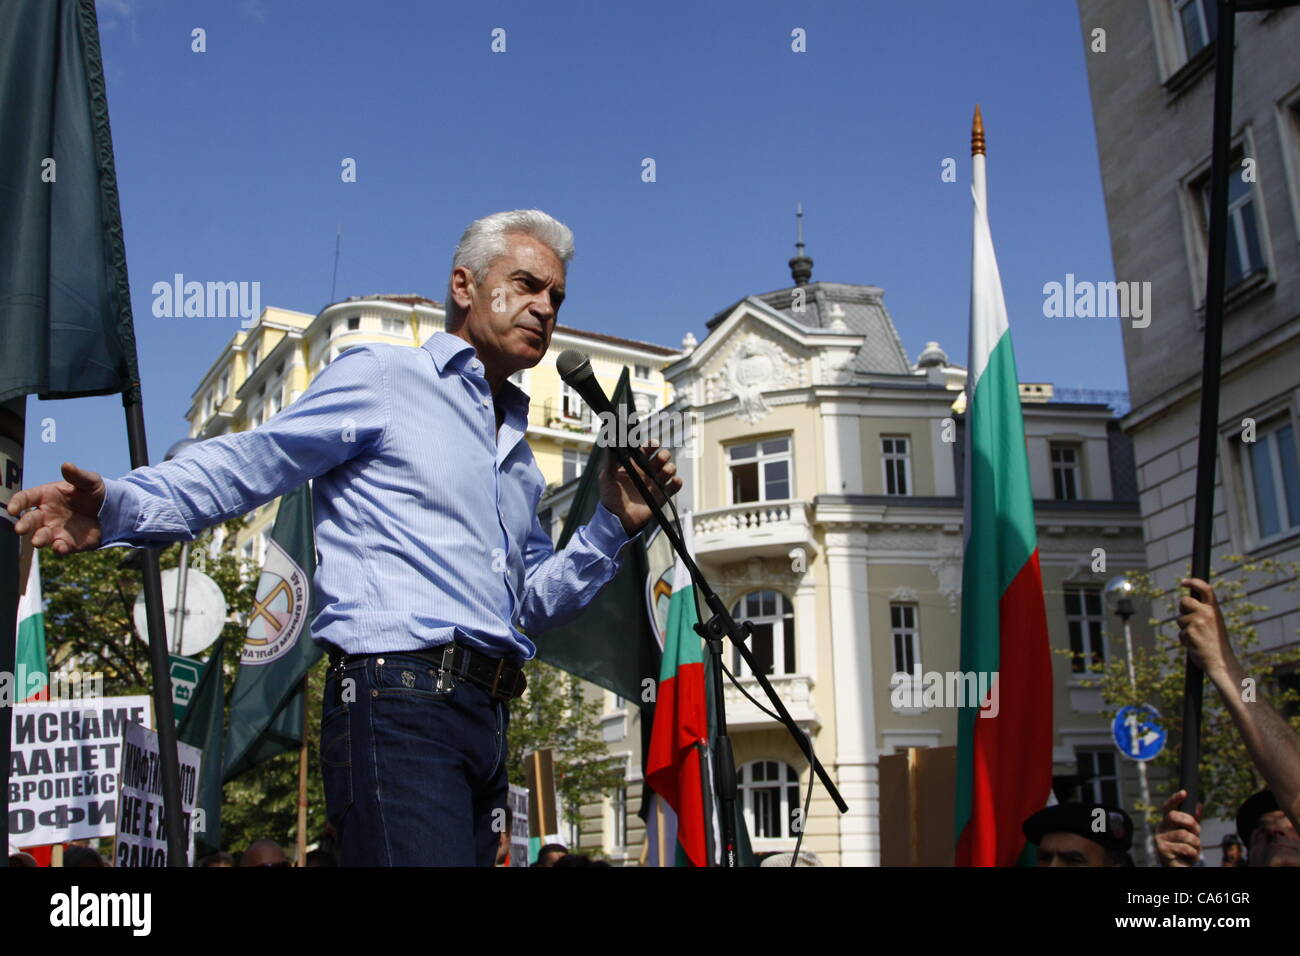 The leader of Bulgaria's ultra-nationalist party ATAKA (Attack) during his speech in front of the Sofia municipality, - Stock Image